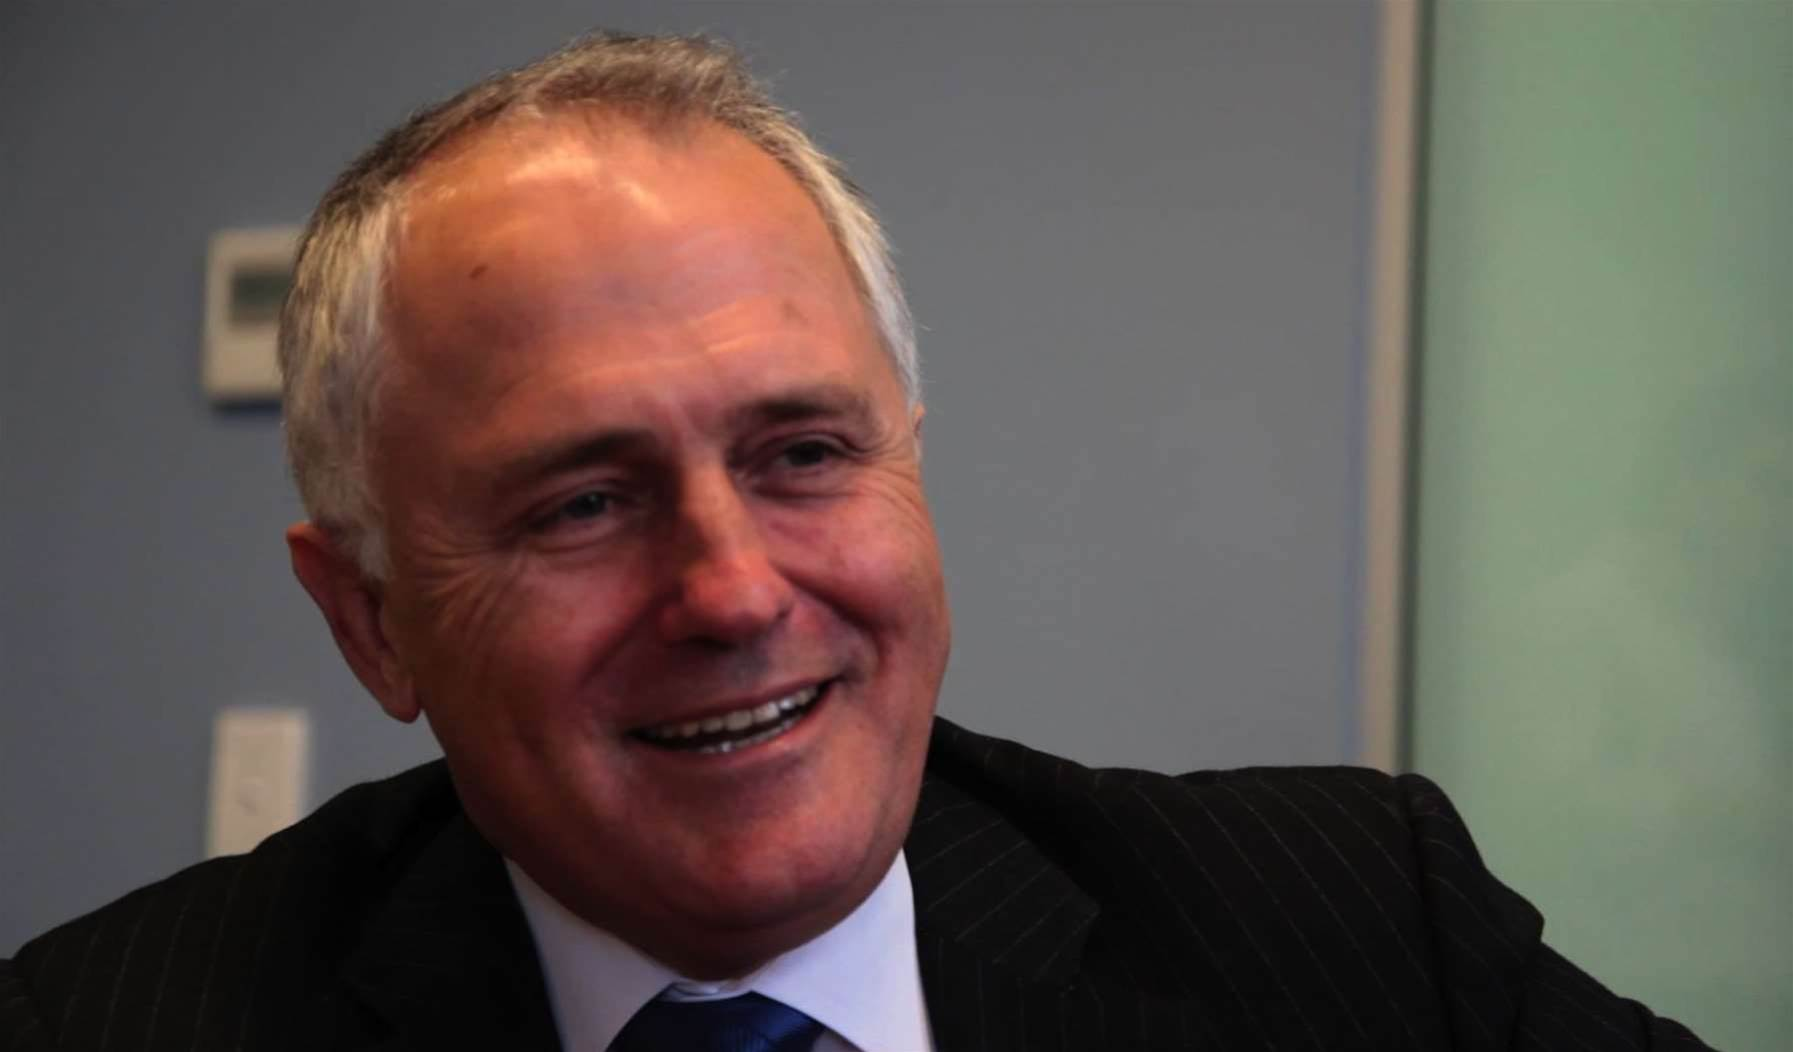 Turnbull calls for global cyber espionage agreement